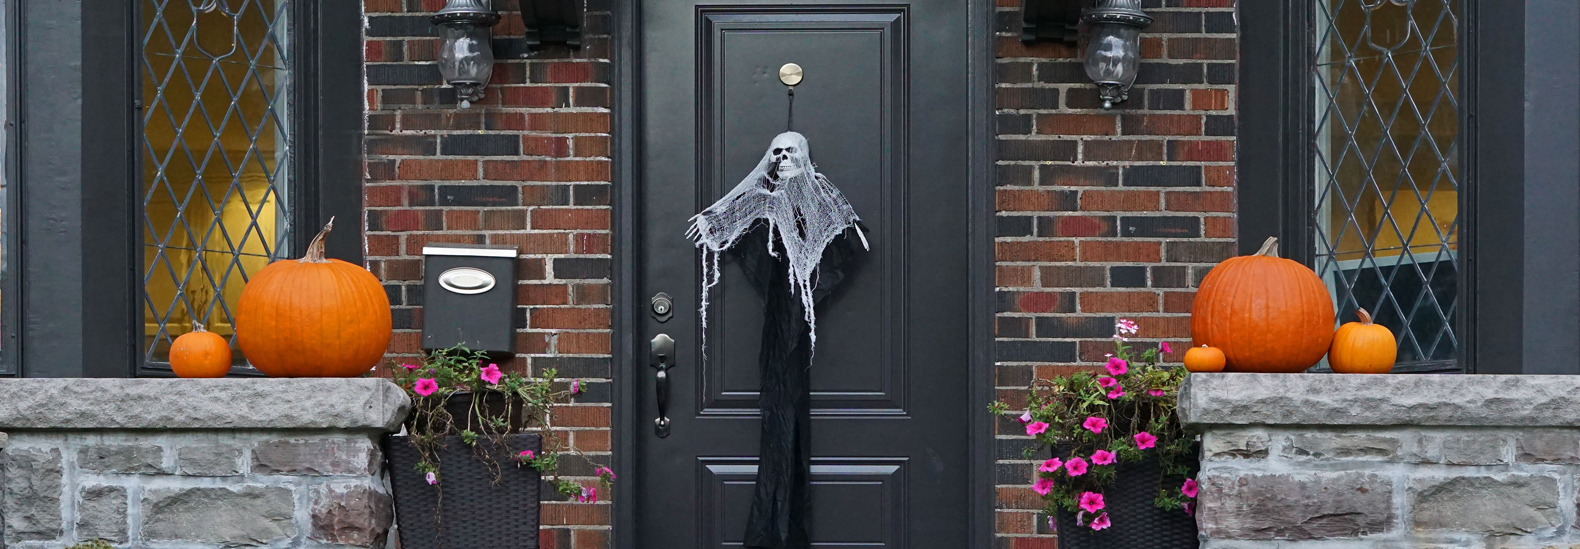 10 Sustainable Halloween Decorations For Your Green Home